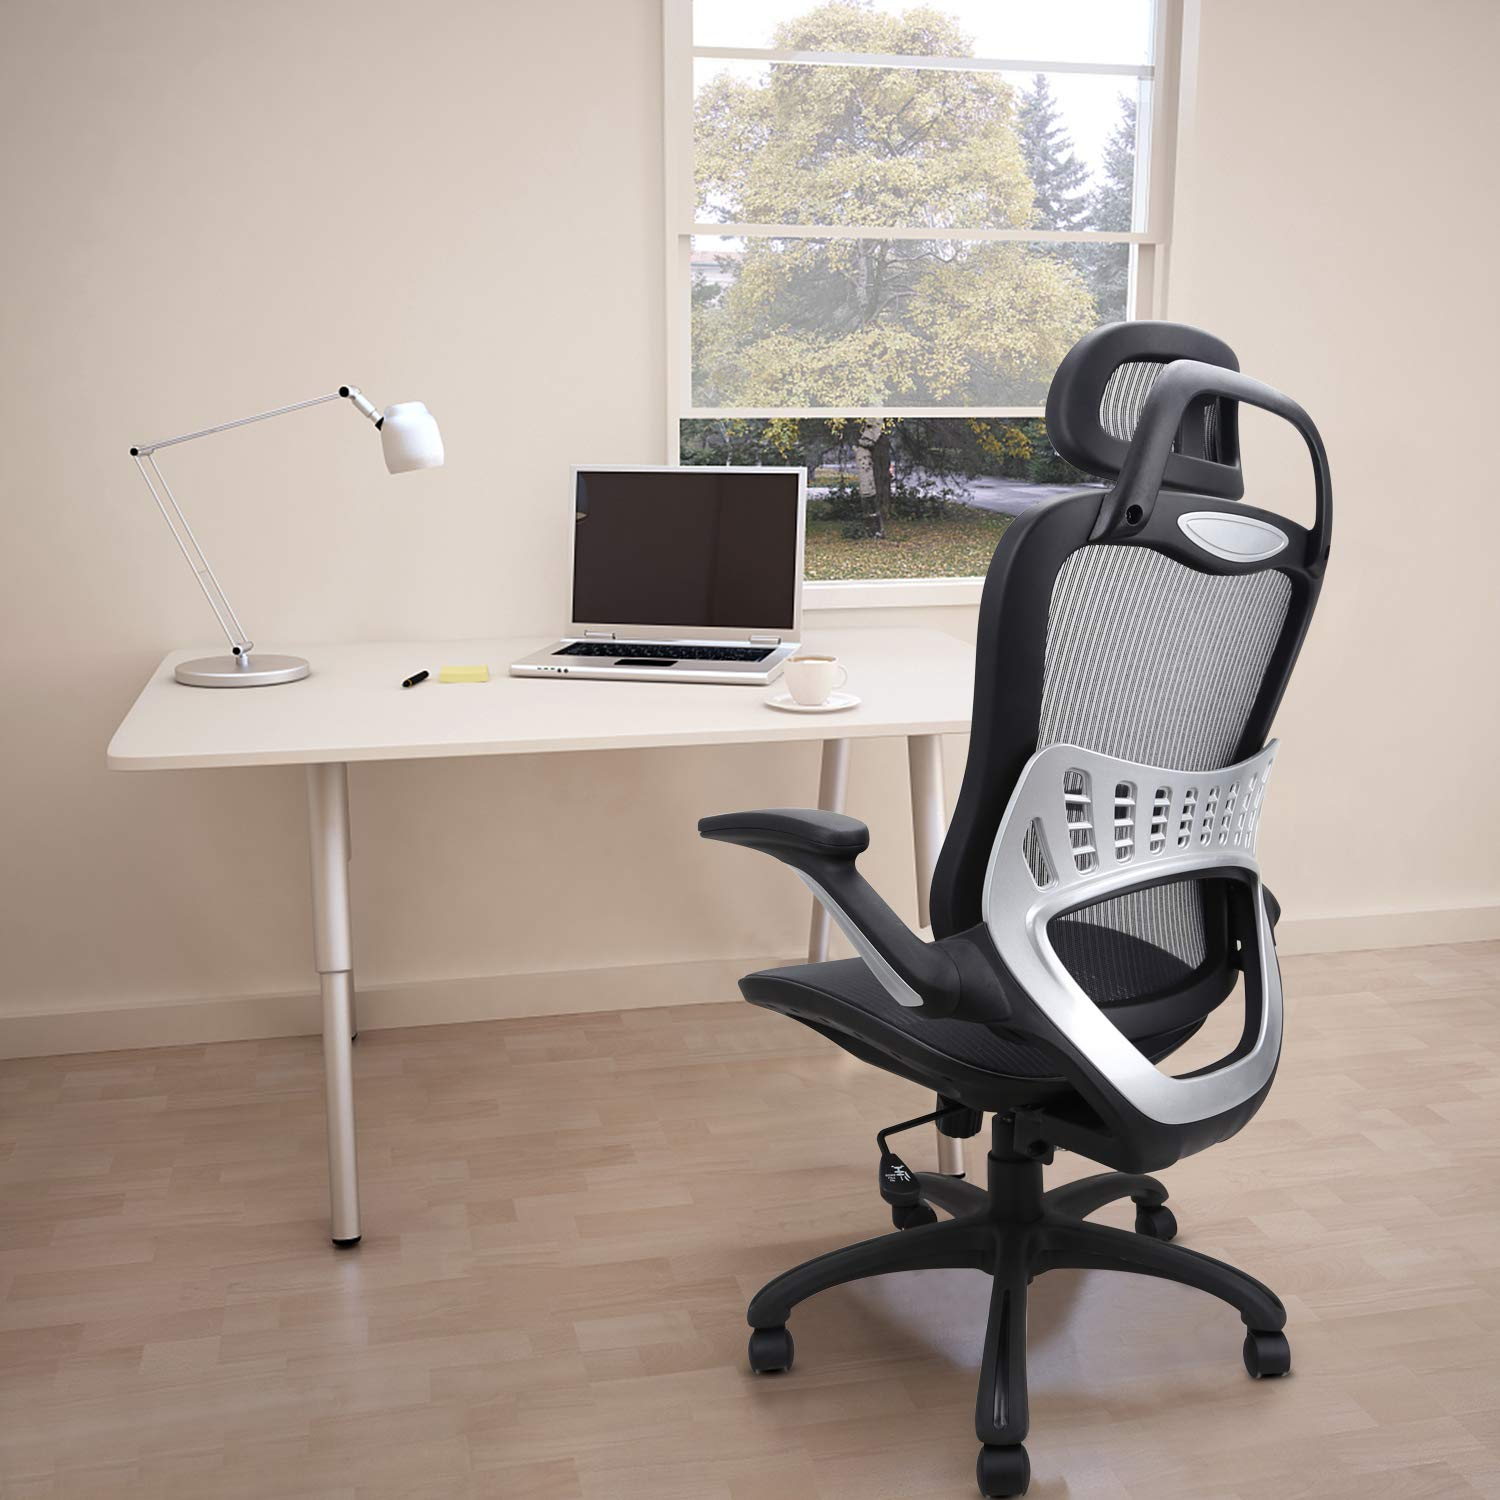 Ergonomic Office Chair: Passed BIFMA/SGS Weight Support Over 300Ibs,Breathable Mesh Cushion &High Back - Executive Chairs with Adjustable Head& Backrest,Flip-up Armrests,360-Degree Swivel Chair by Komene (Image #7)